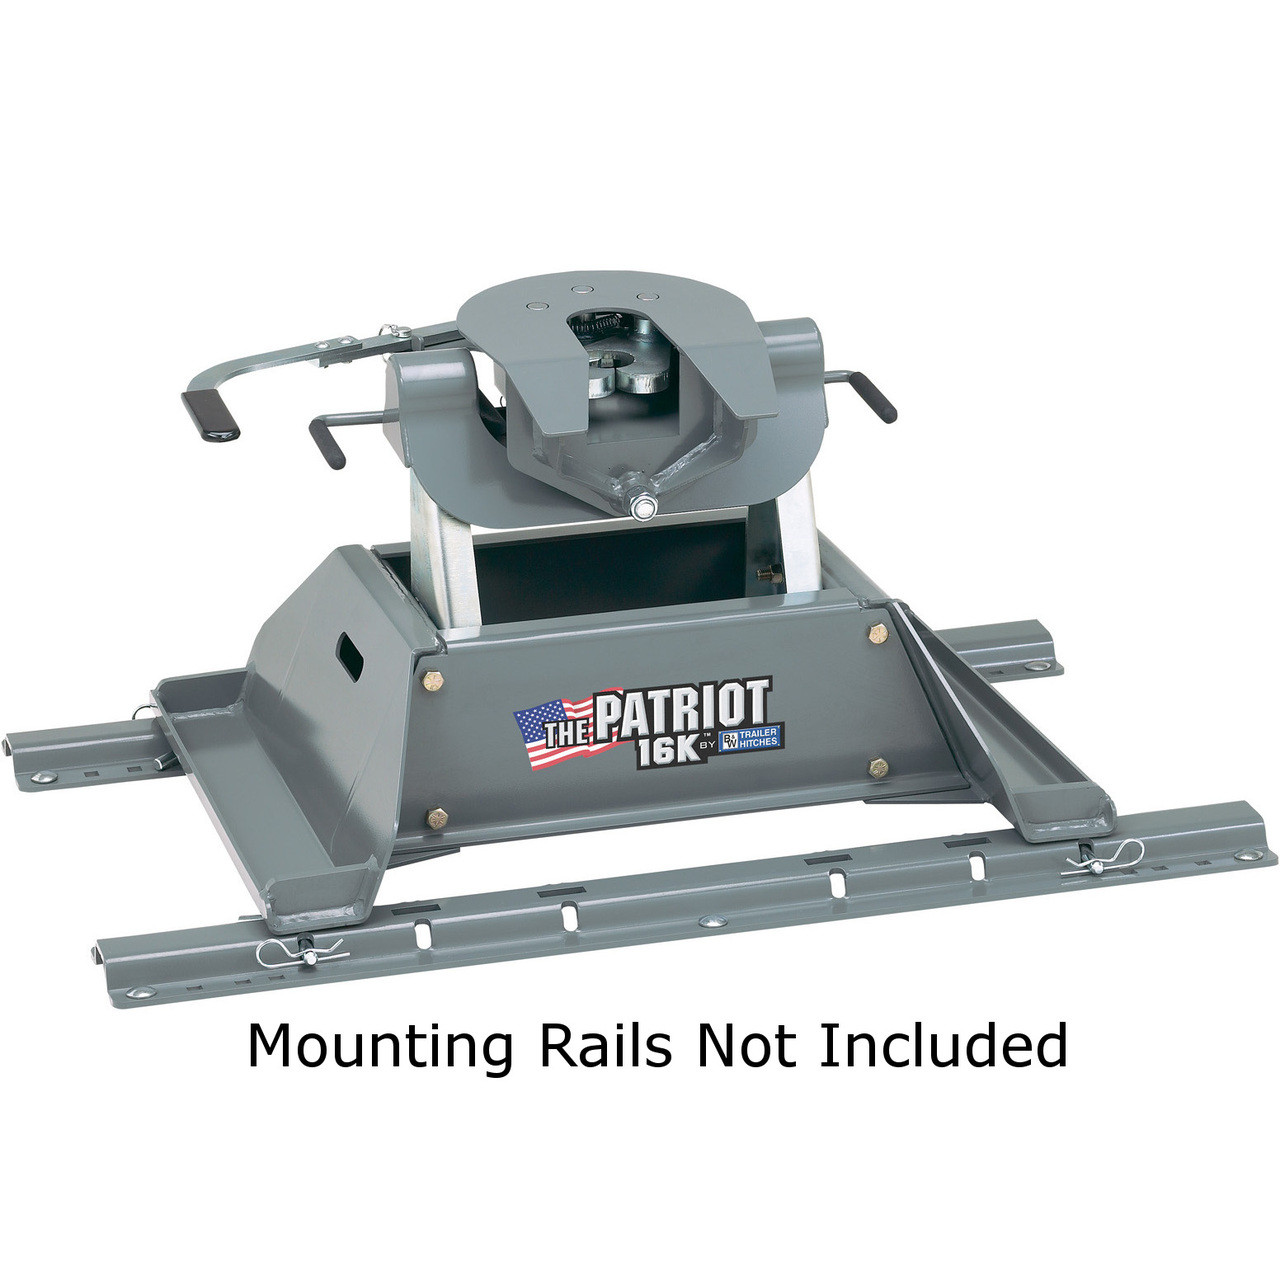 BW3200 --- B & W Patriot 16K Fifth Wheel Hitch - Made in the USA